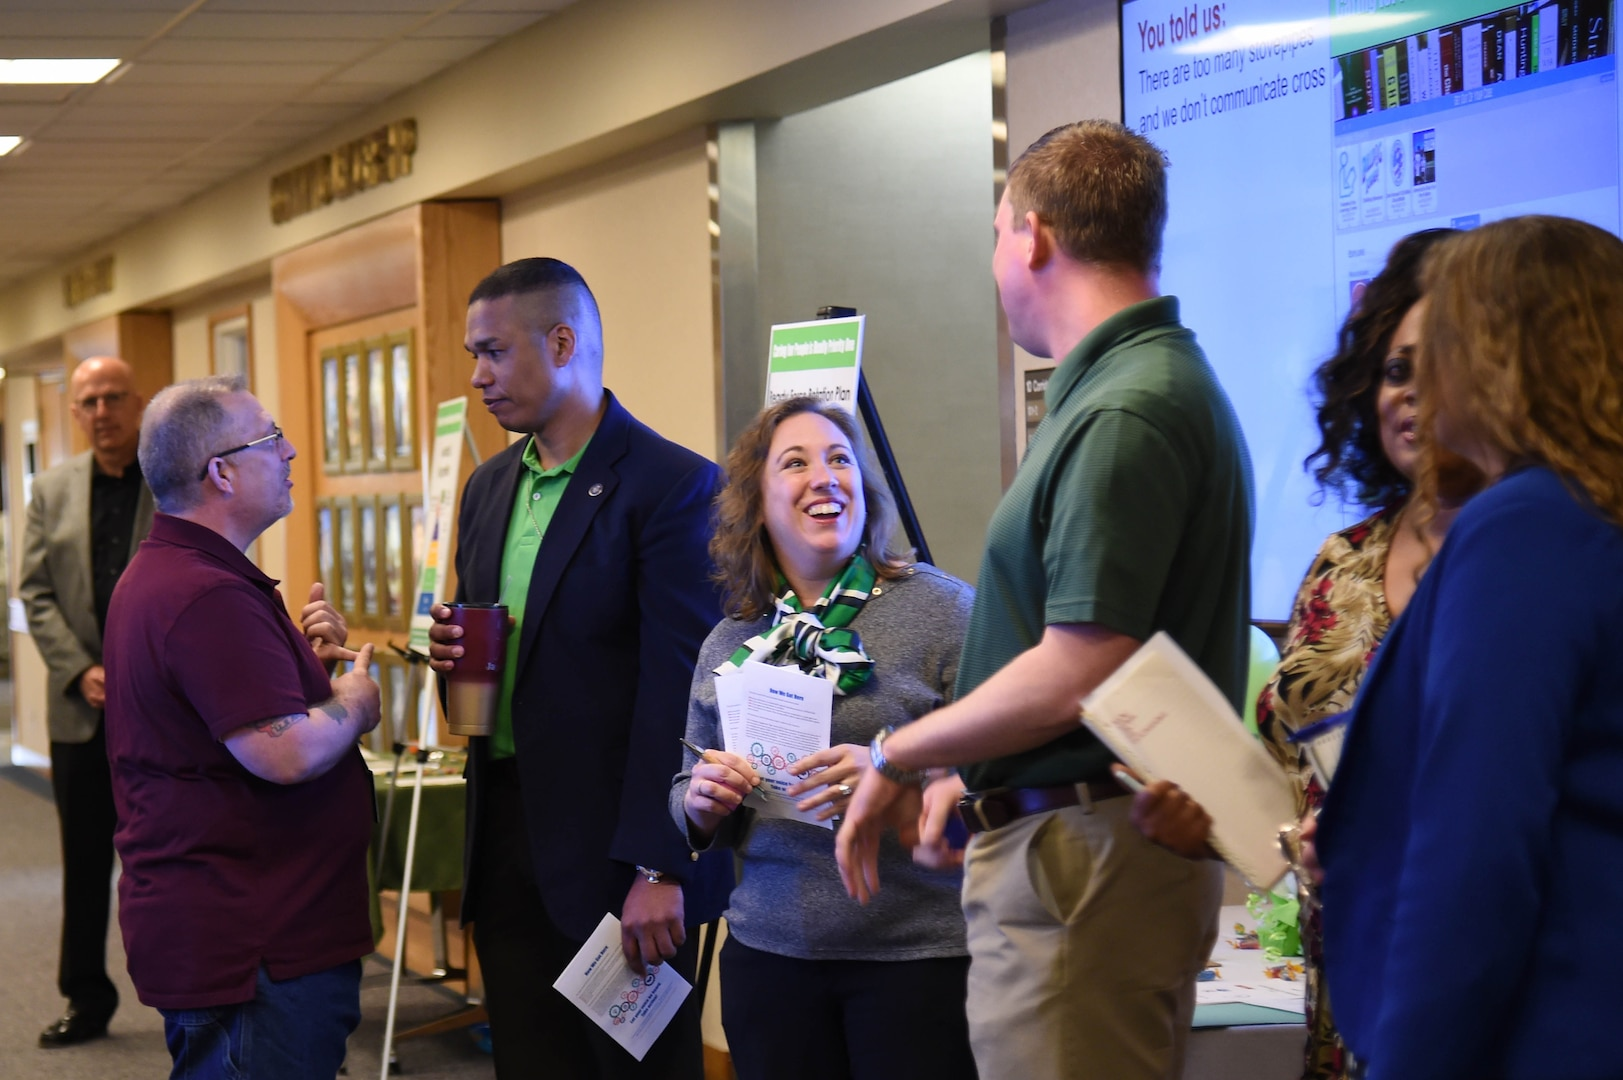 Members of the U.S. Strategic Command Employee Engagement Tiger Team speak with employees on May 9, 2018. The team initiated the Ready Force Rotation Program, which is the first formal program implemented in the command that allows civilians to broaden their work experience on April 1, 2018. U.S. Strategic Command has global responsibilities assigned through the Unified Command Plan that include strategic deterrence, nuclear operations, space operations, joint electromagnetic spectrum operations, global strike, missile defense, and analysis and targeting.